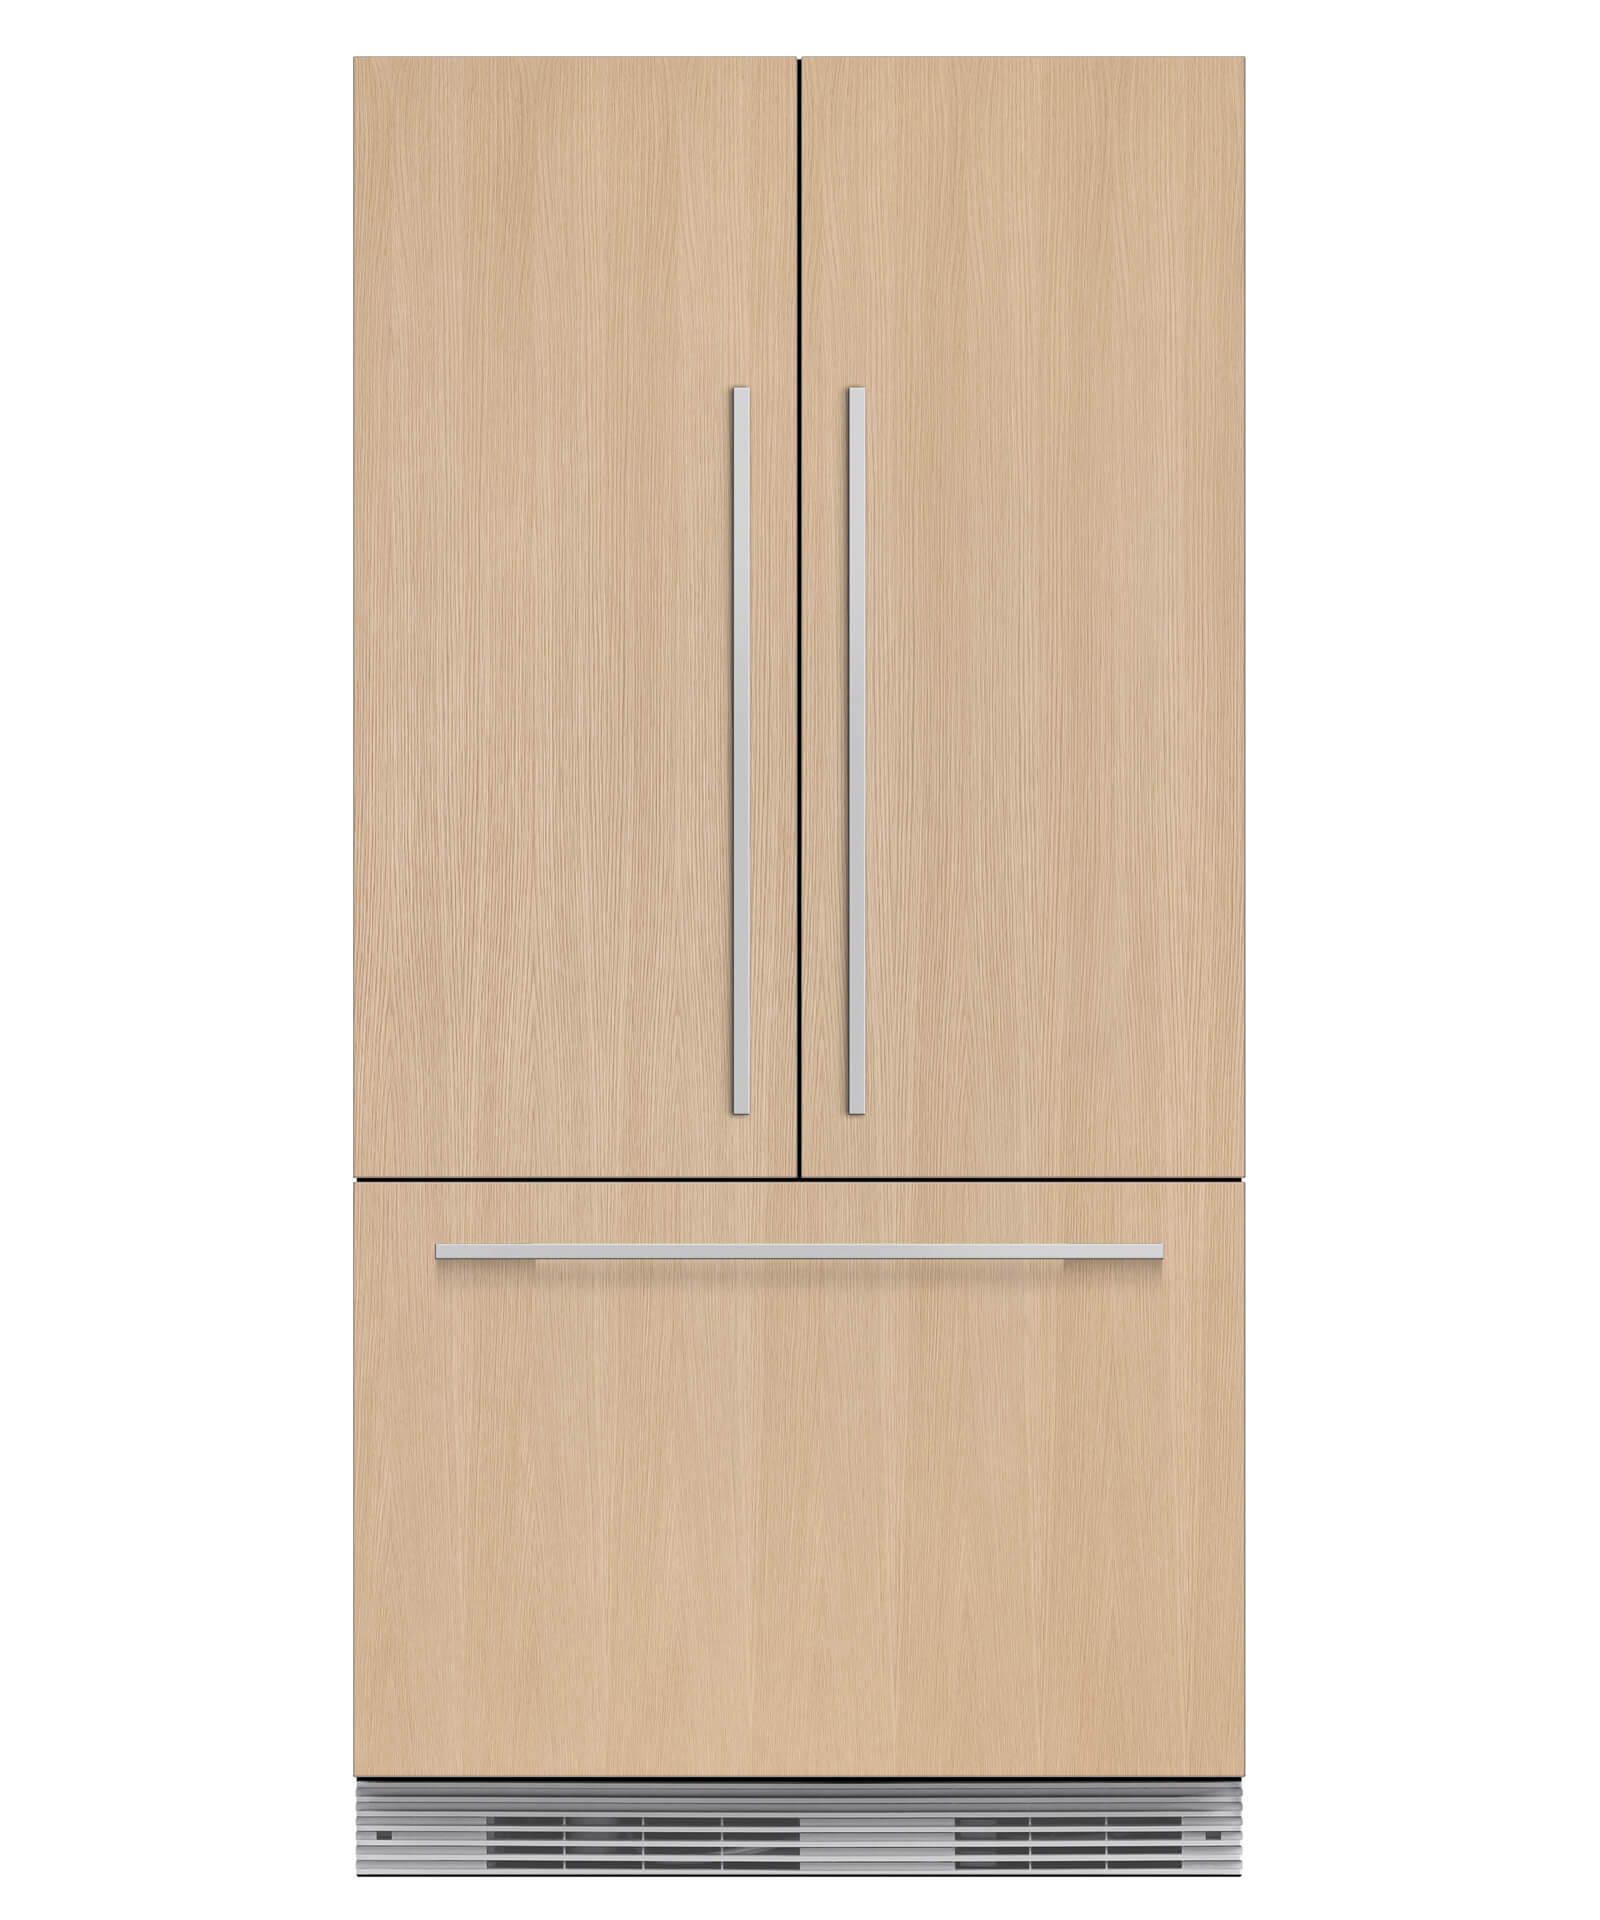 "RS36A72J1_N - ActiveSmart™ Refrigerator 36"" French Door Integrated with ice – 72"" Tall - 25075"